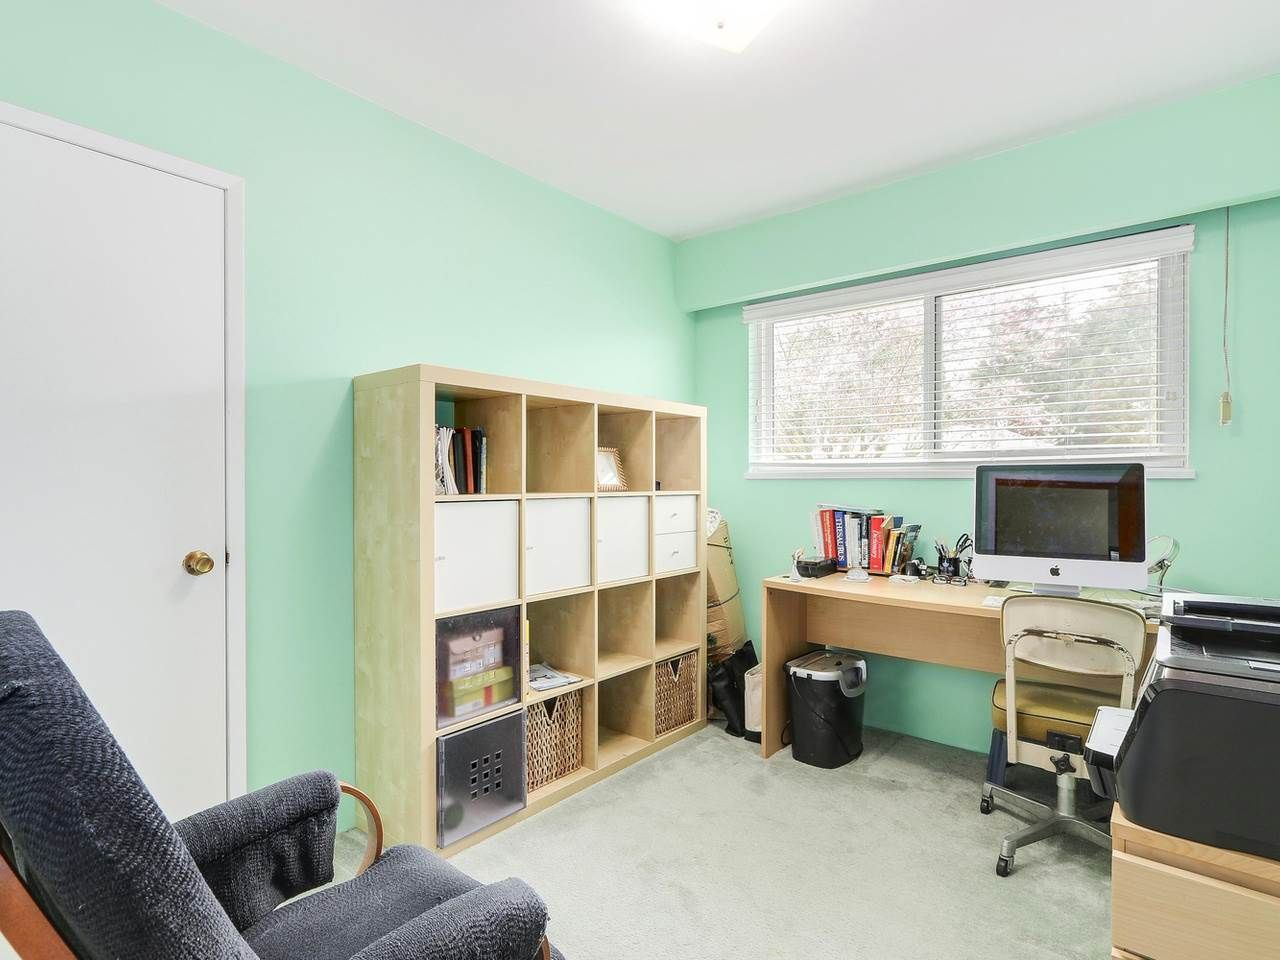 Photo 14: Photos: 731 LINTON Street in Coquitlam: Central Coquitlam House for sale : MLS®# R2157896